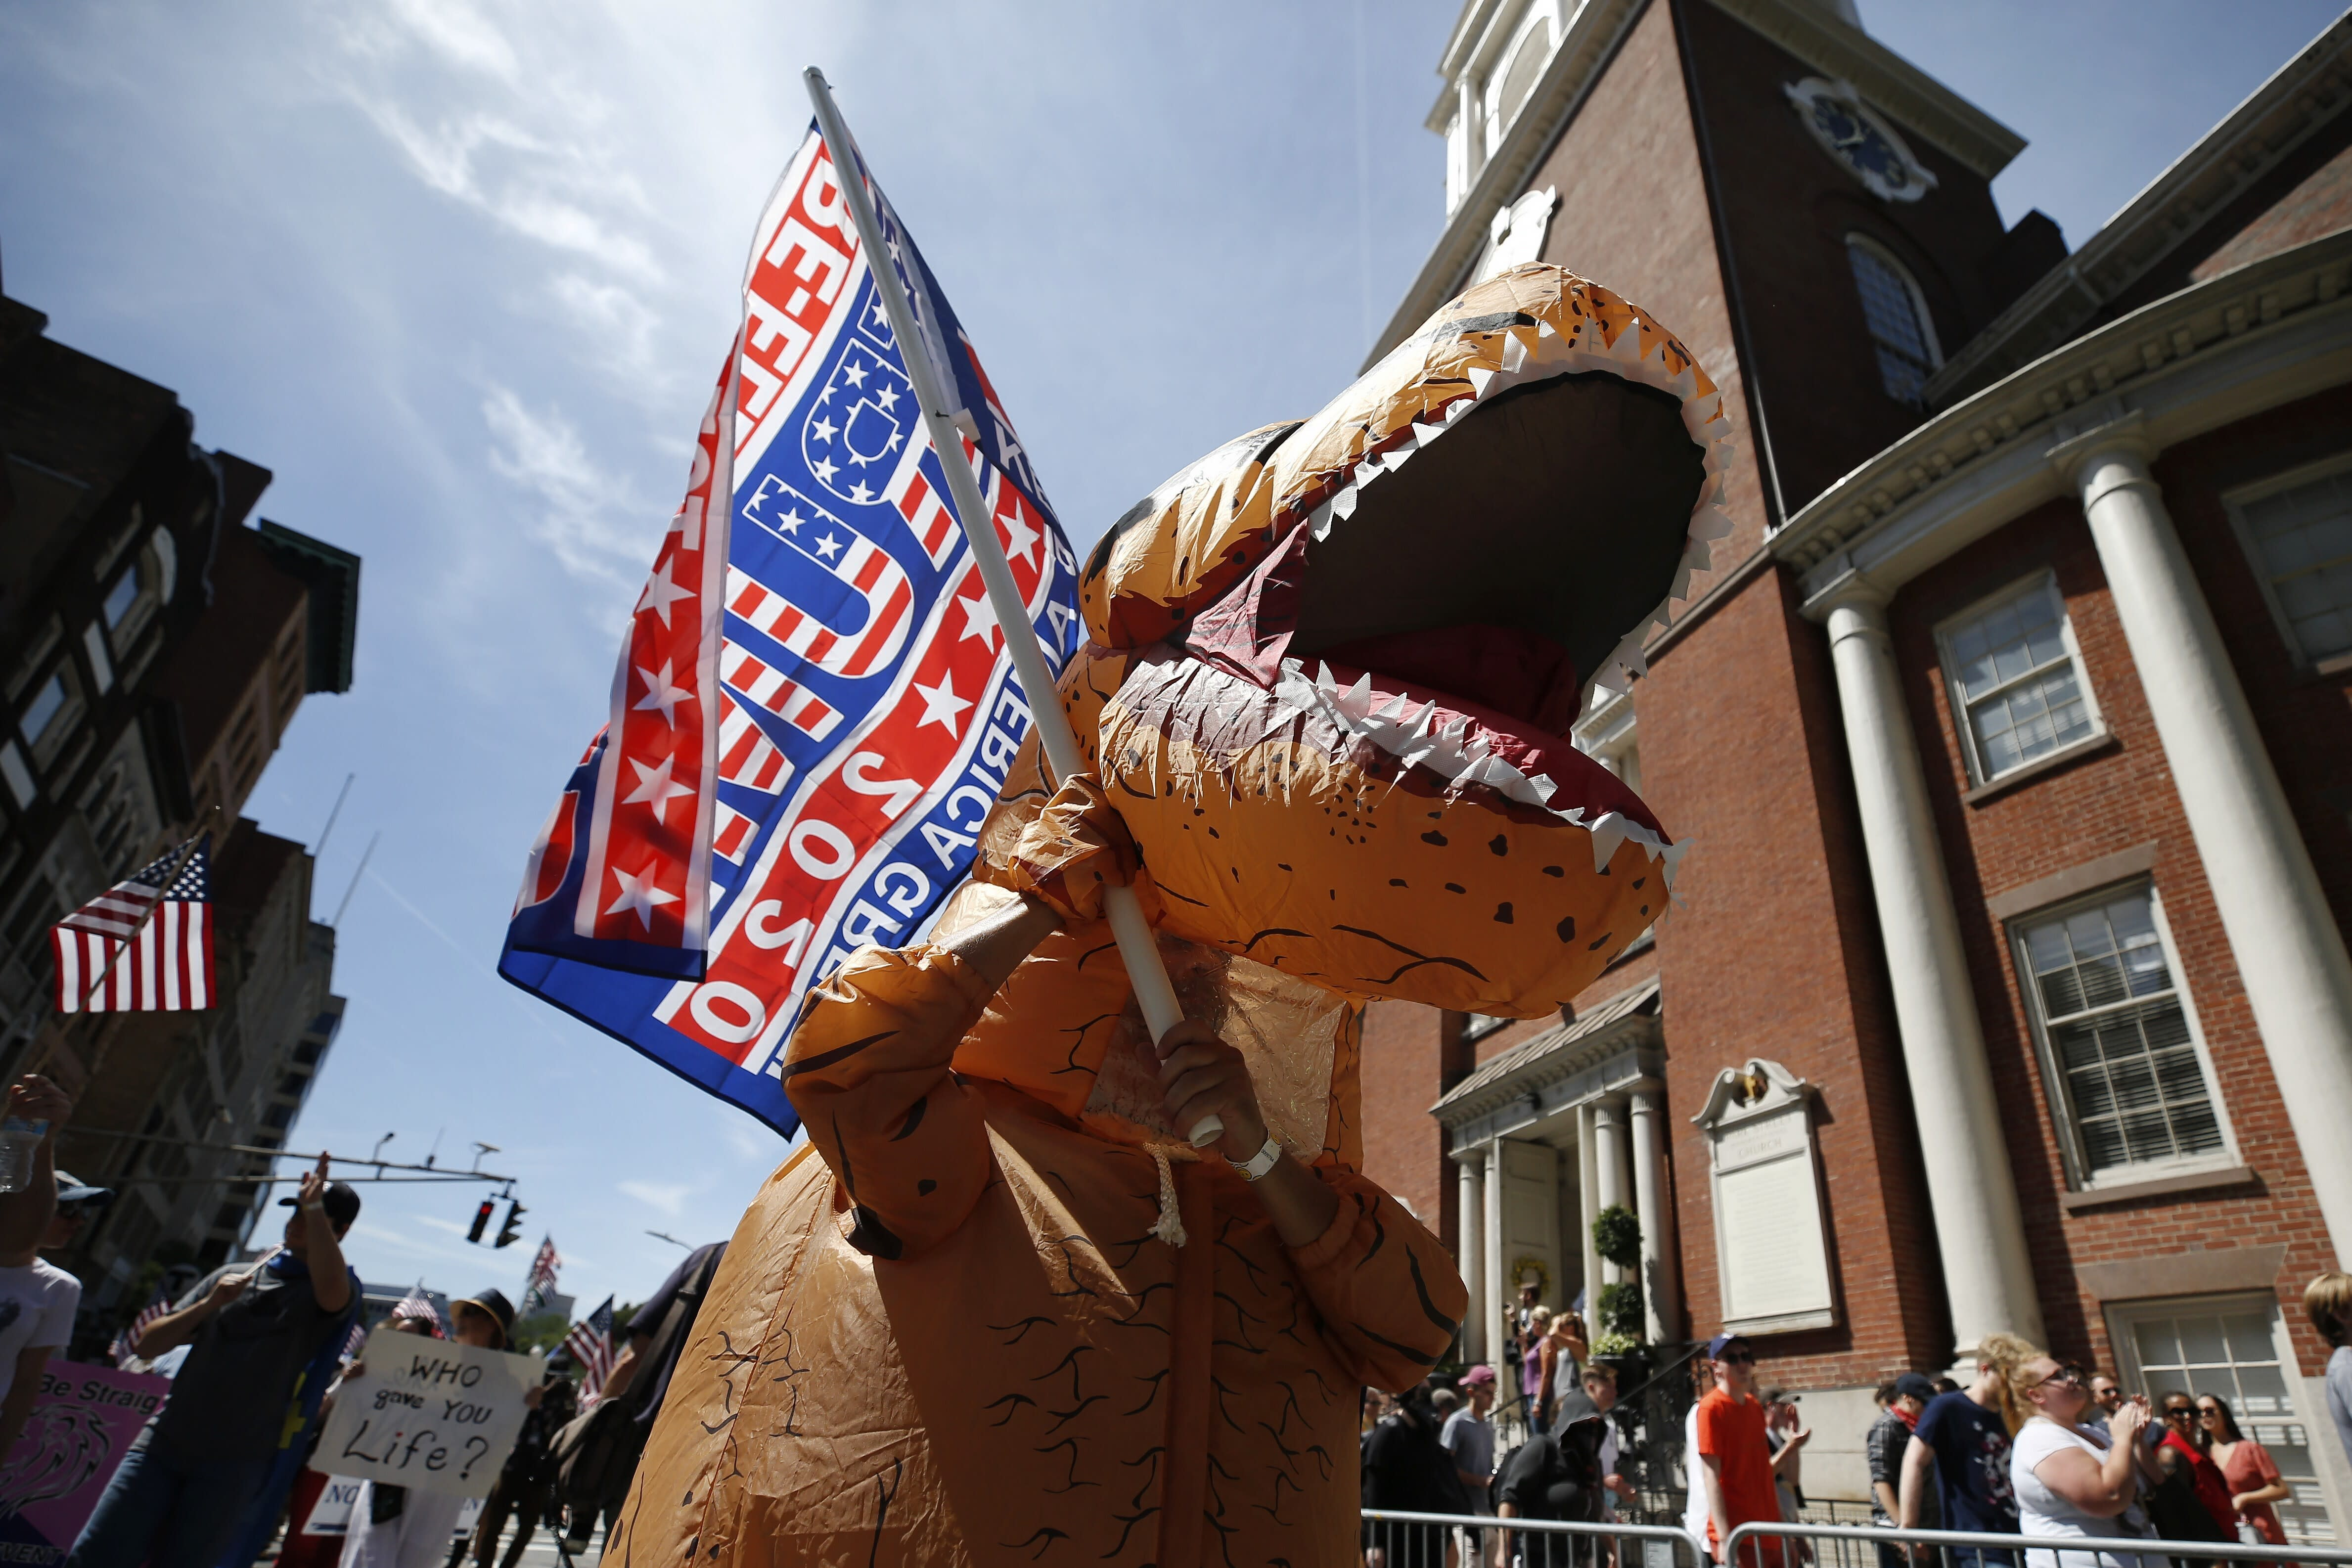 """A marcher wears a dinosaur costume during the Straight Pride Parade in Boston, Saturday, Aug. 31, 2019. Several dozen marchers and about as many counter-demonstrators have gathered in Boston for a """"straight pride"""" parade. The organizers say they believe straight people are an oppressed majority. (AP Photo/Michael Dwyer)"""